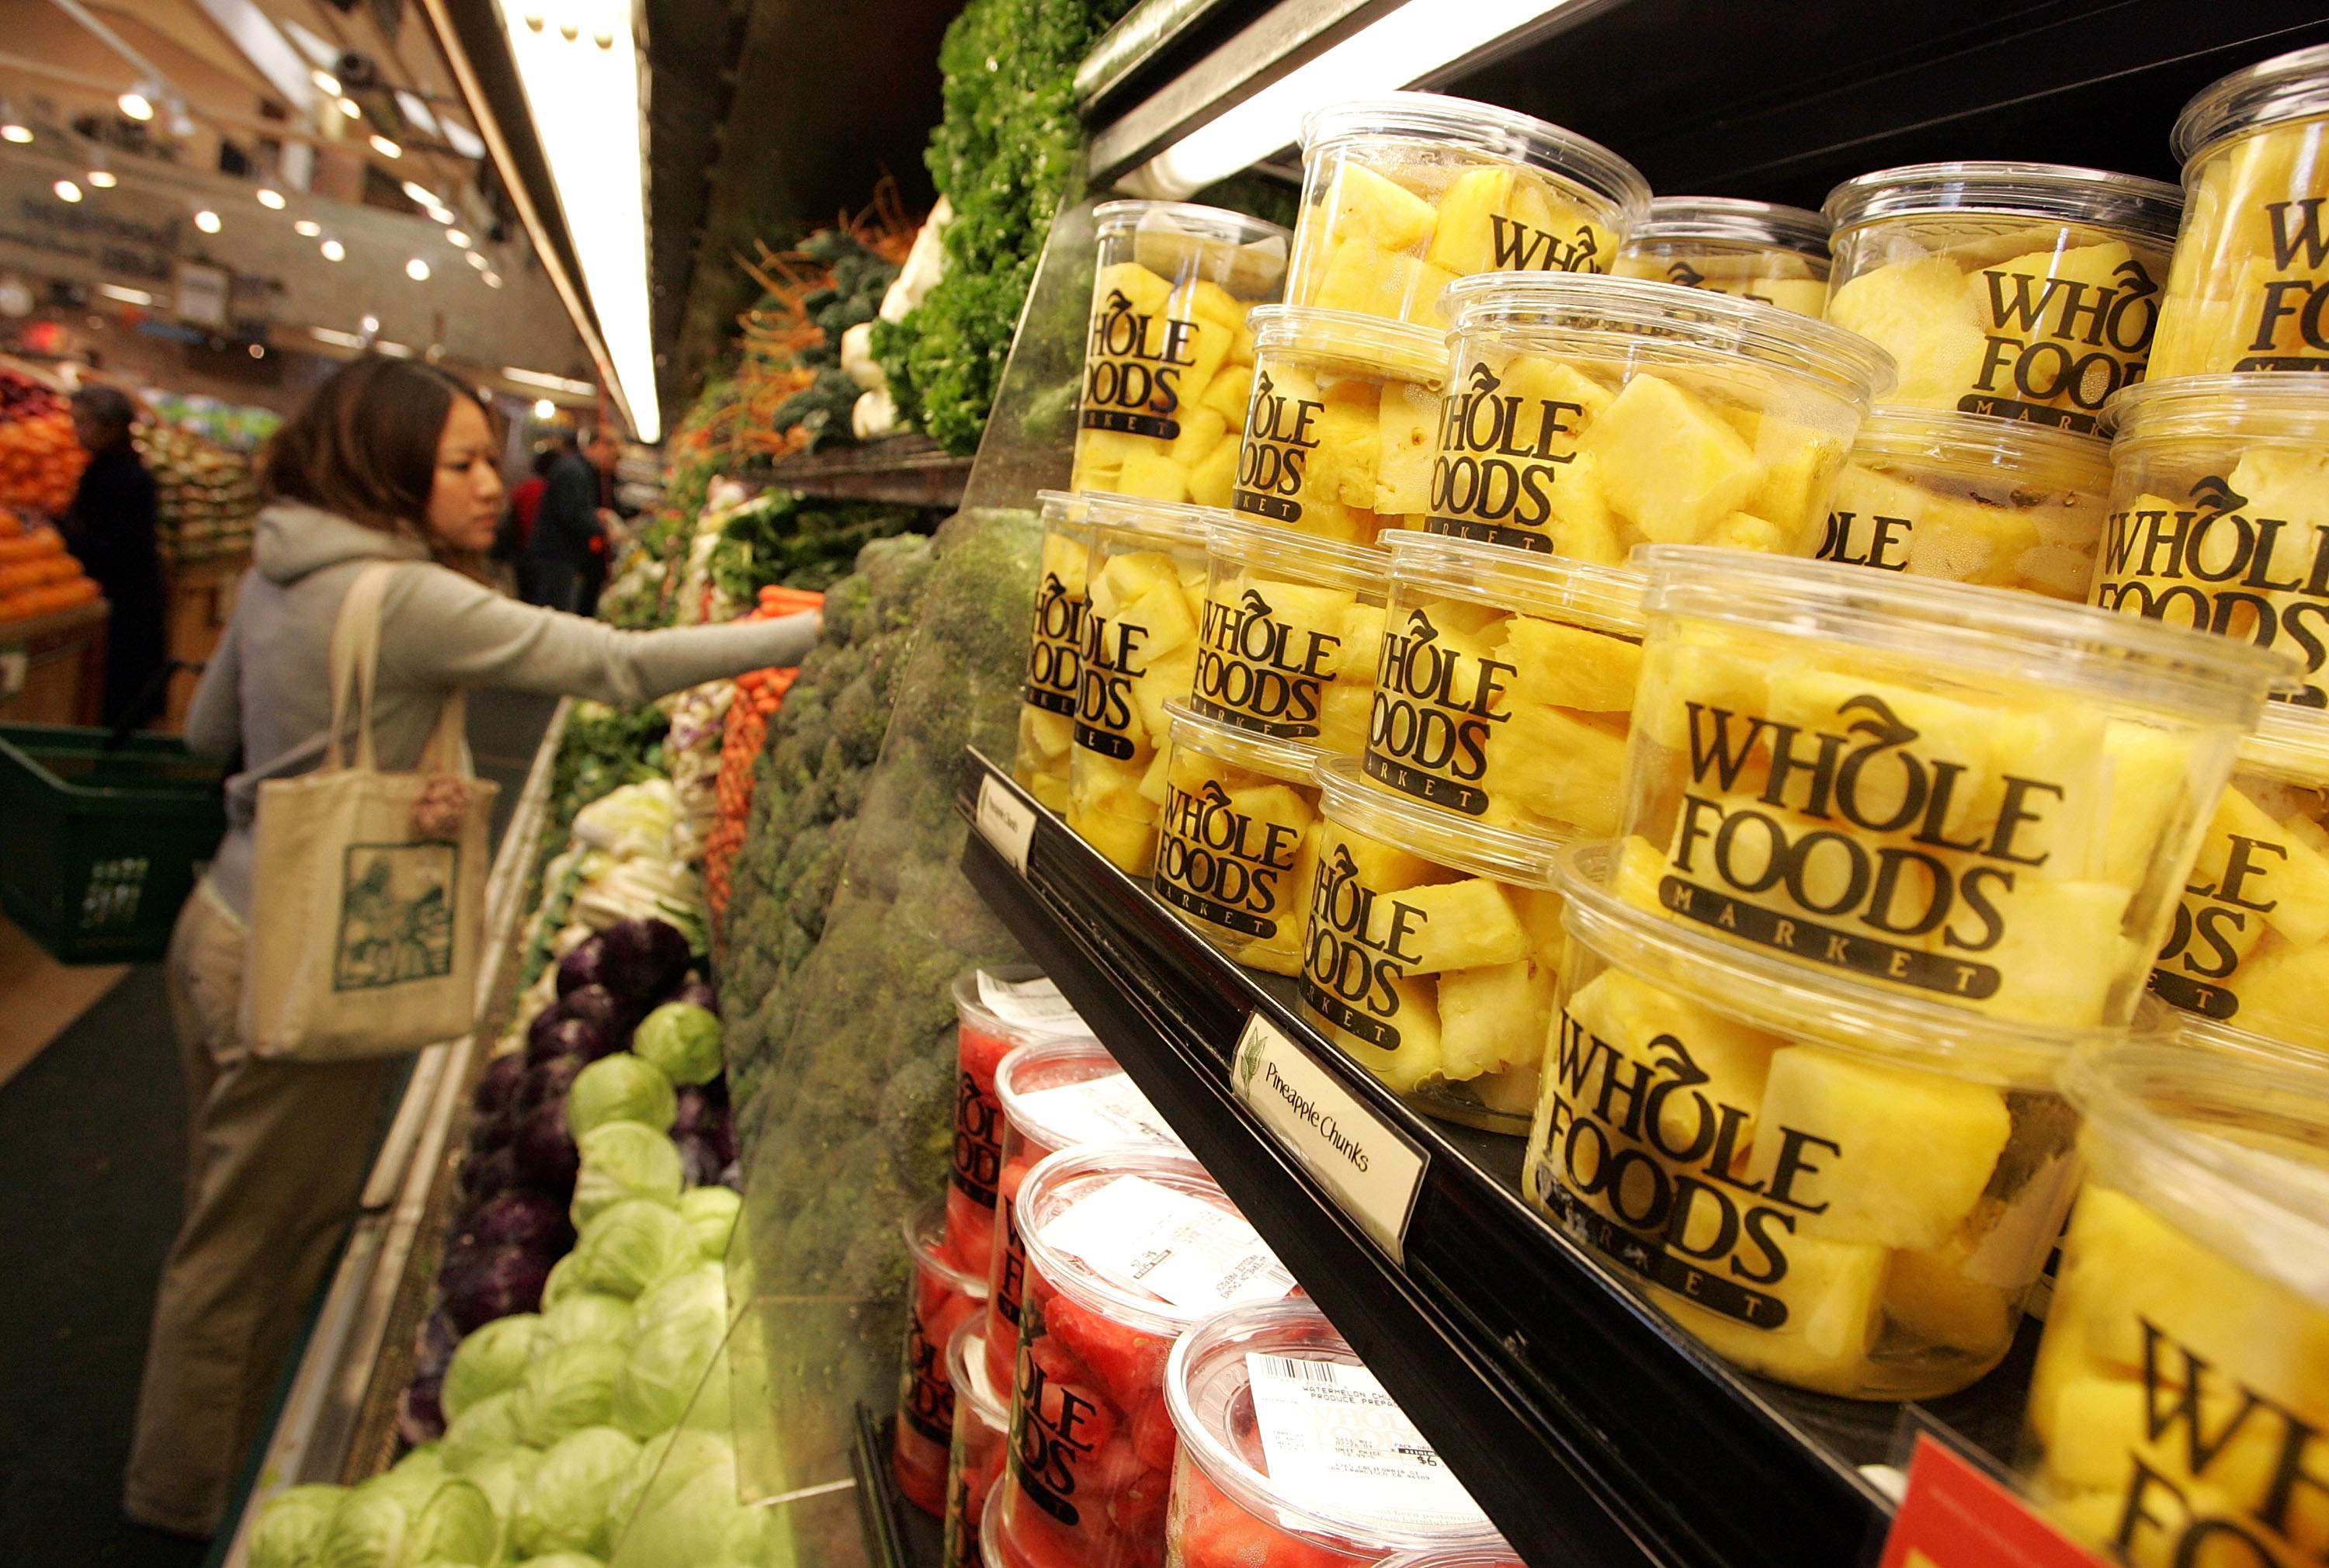 A customer shops for produce at a Whole Foods Market February 22, 2007 in San Francisco, California.